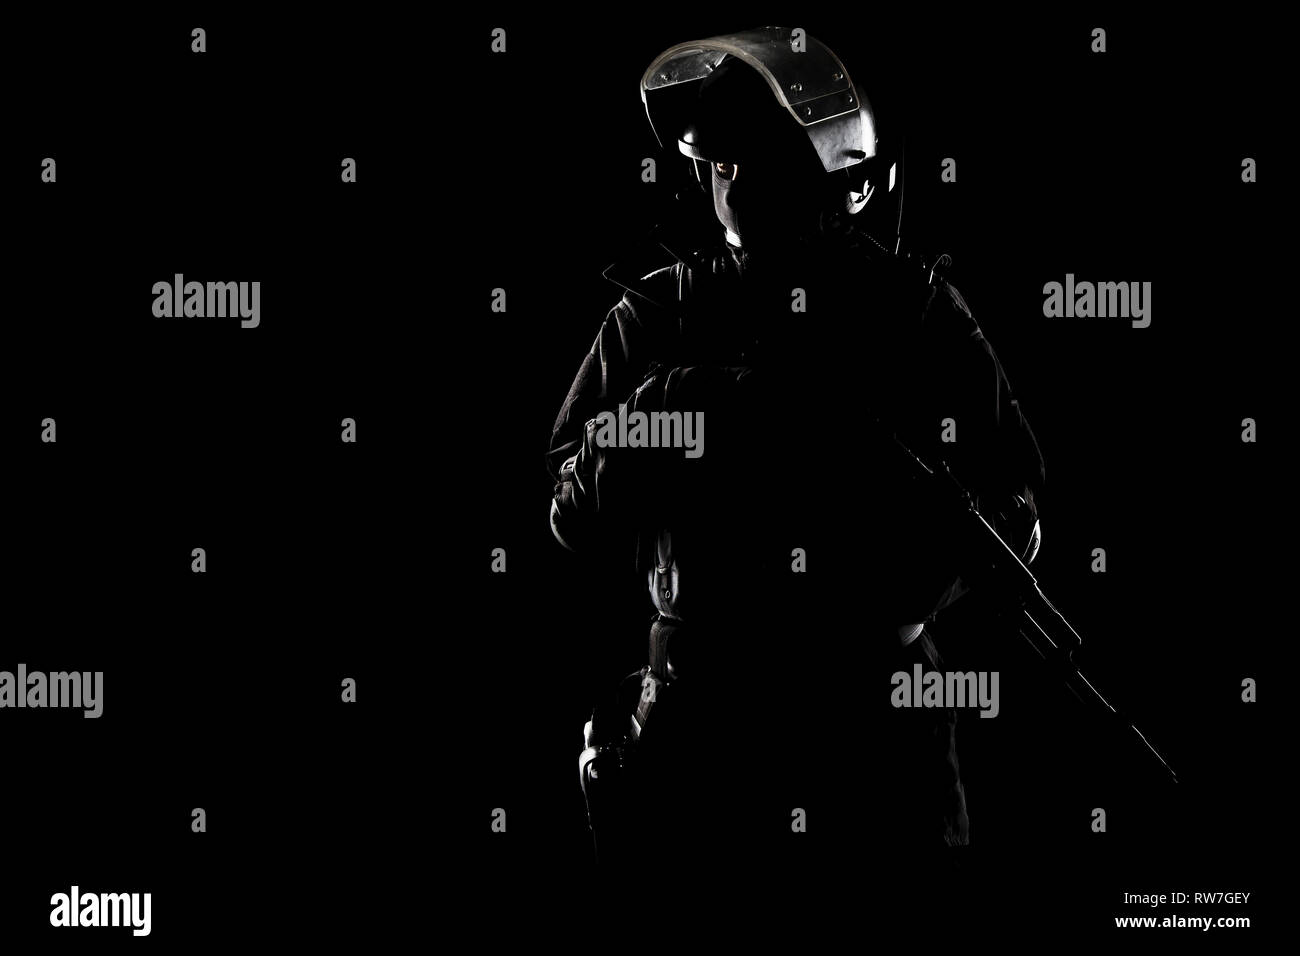 Photo de contour soldat spec ops sur fond noir. Photo Stock